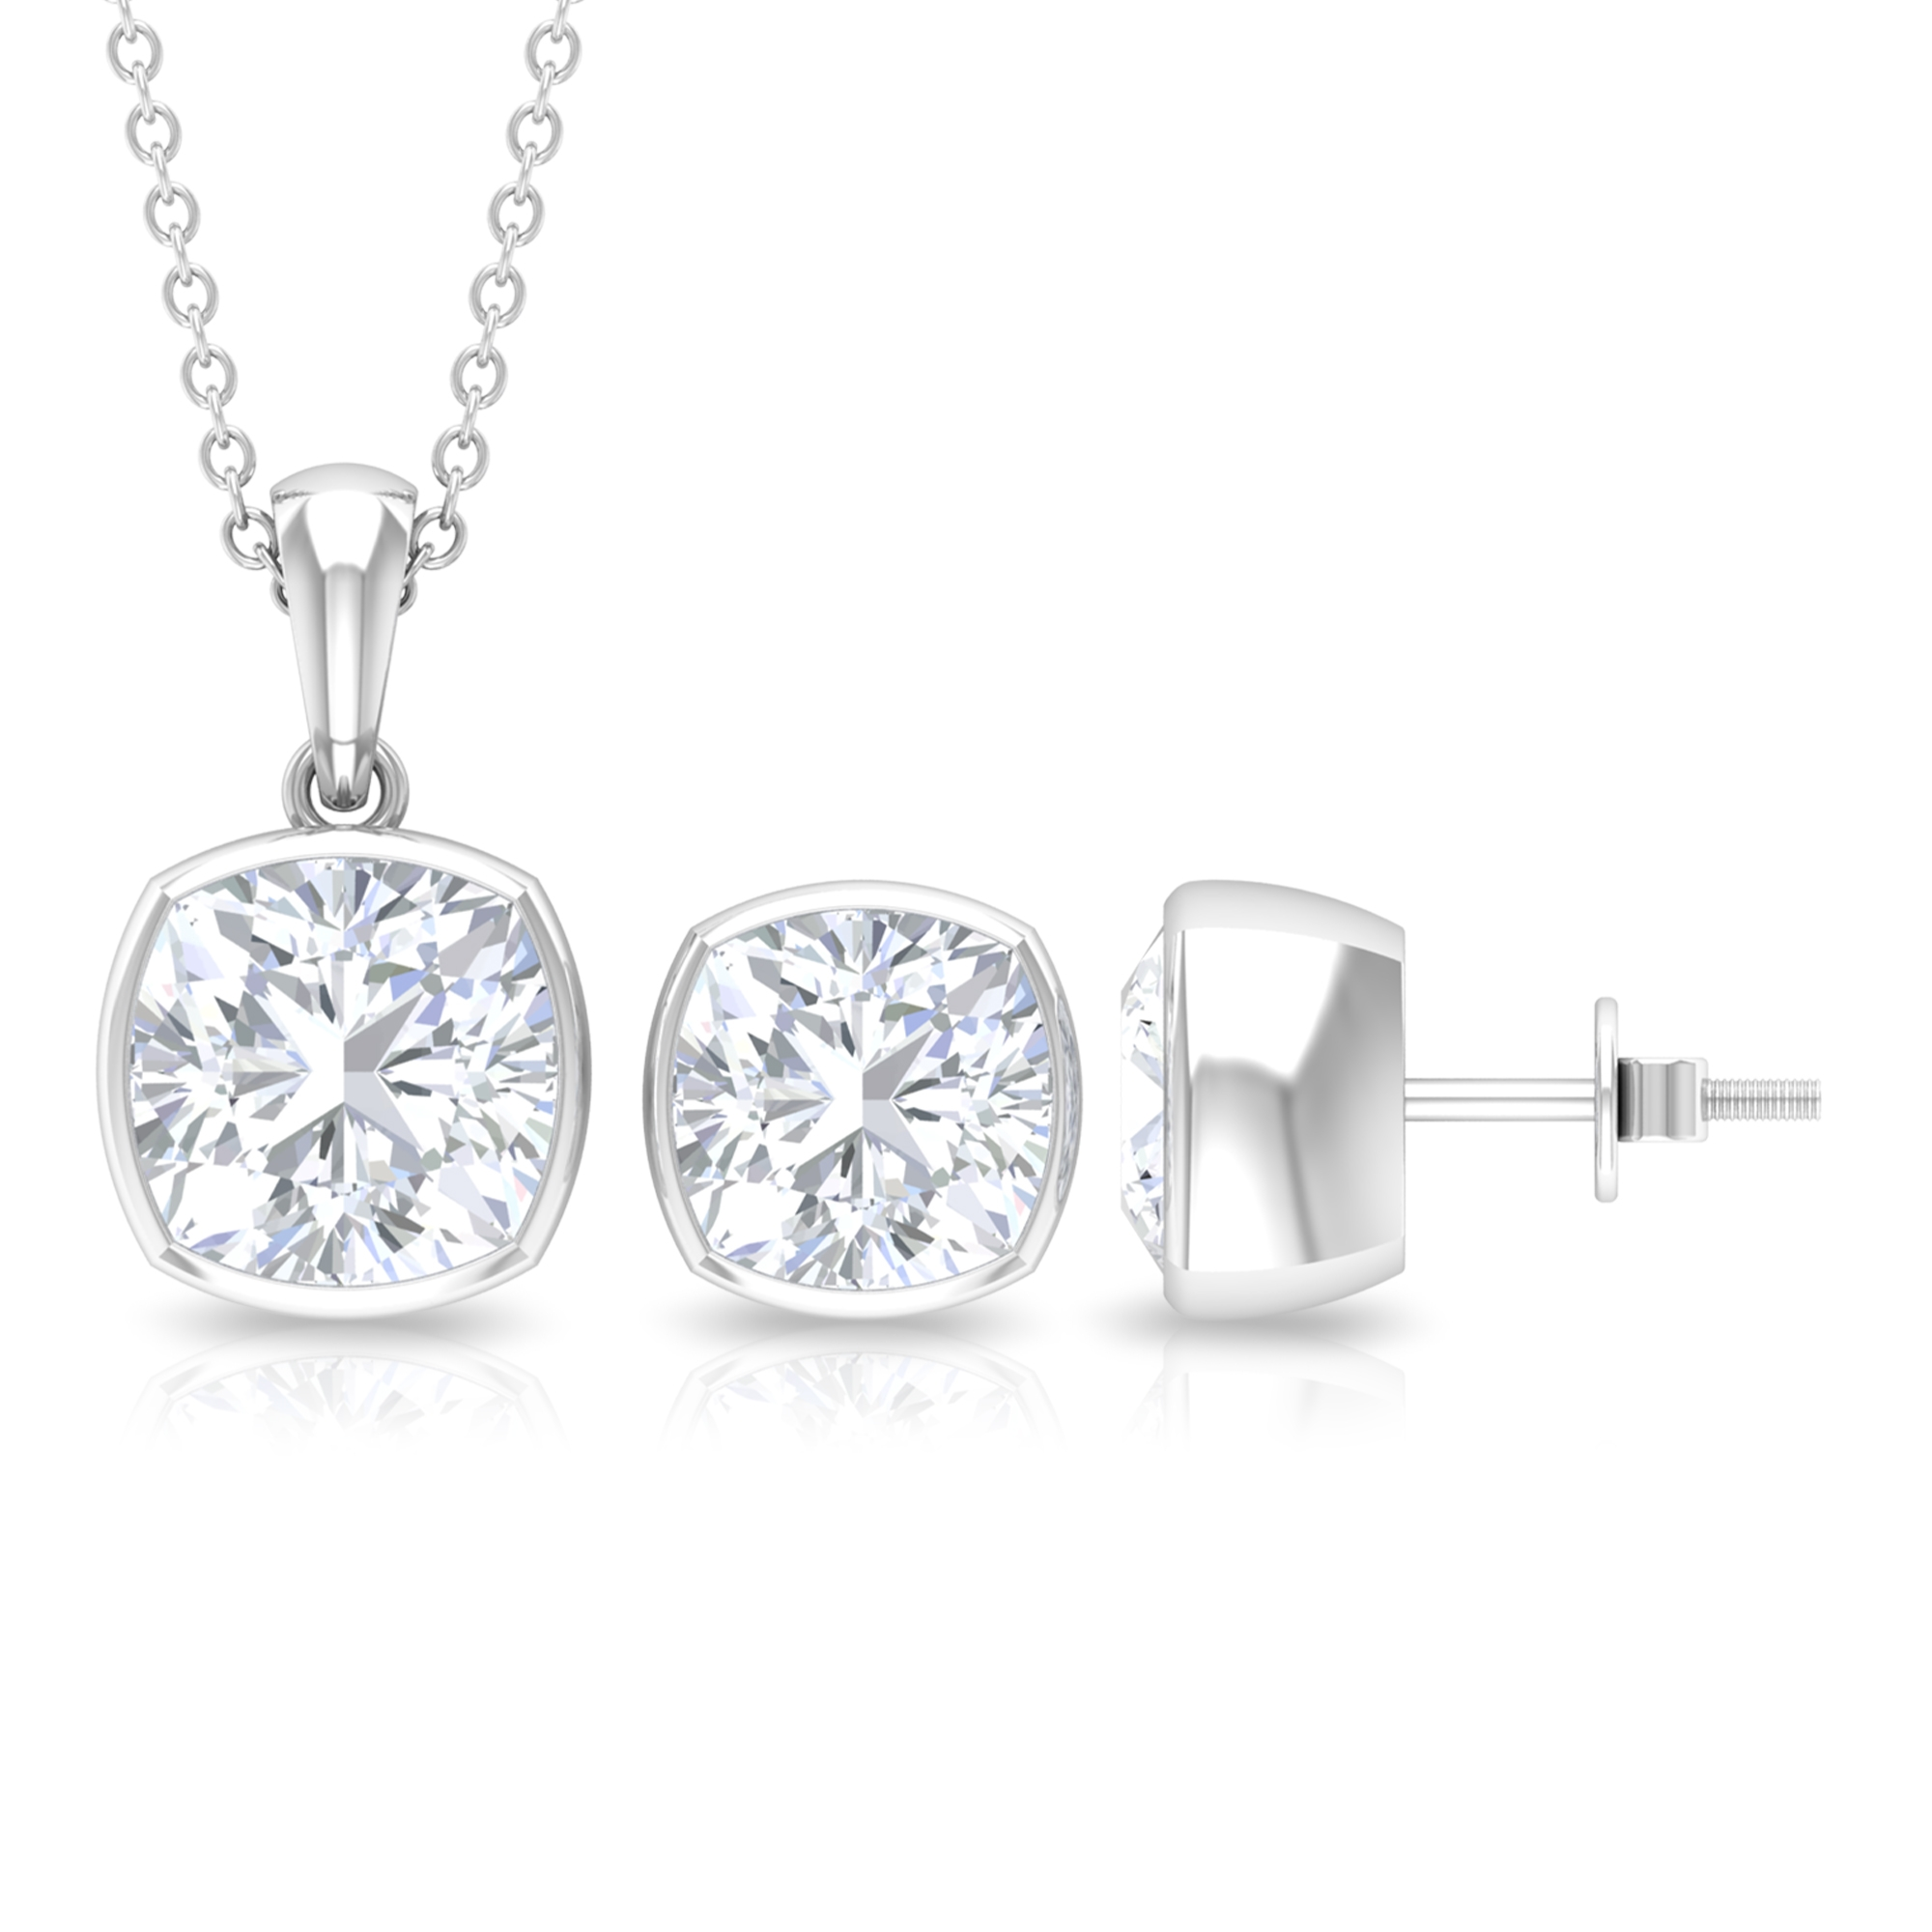 6.25 CT Cushion Cut Moissanite Solitaire Jewelry Set in Bezel Setting